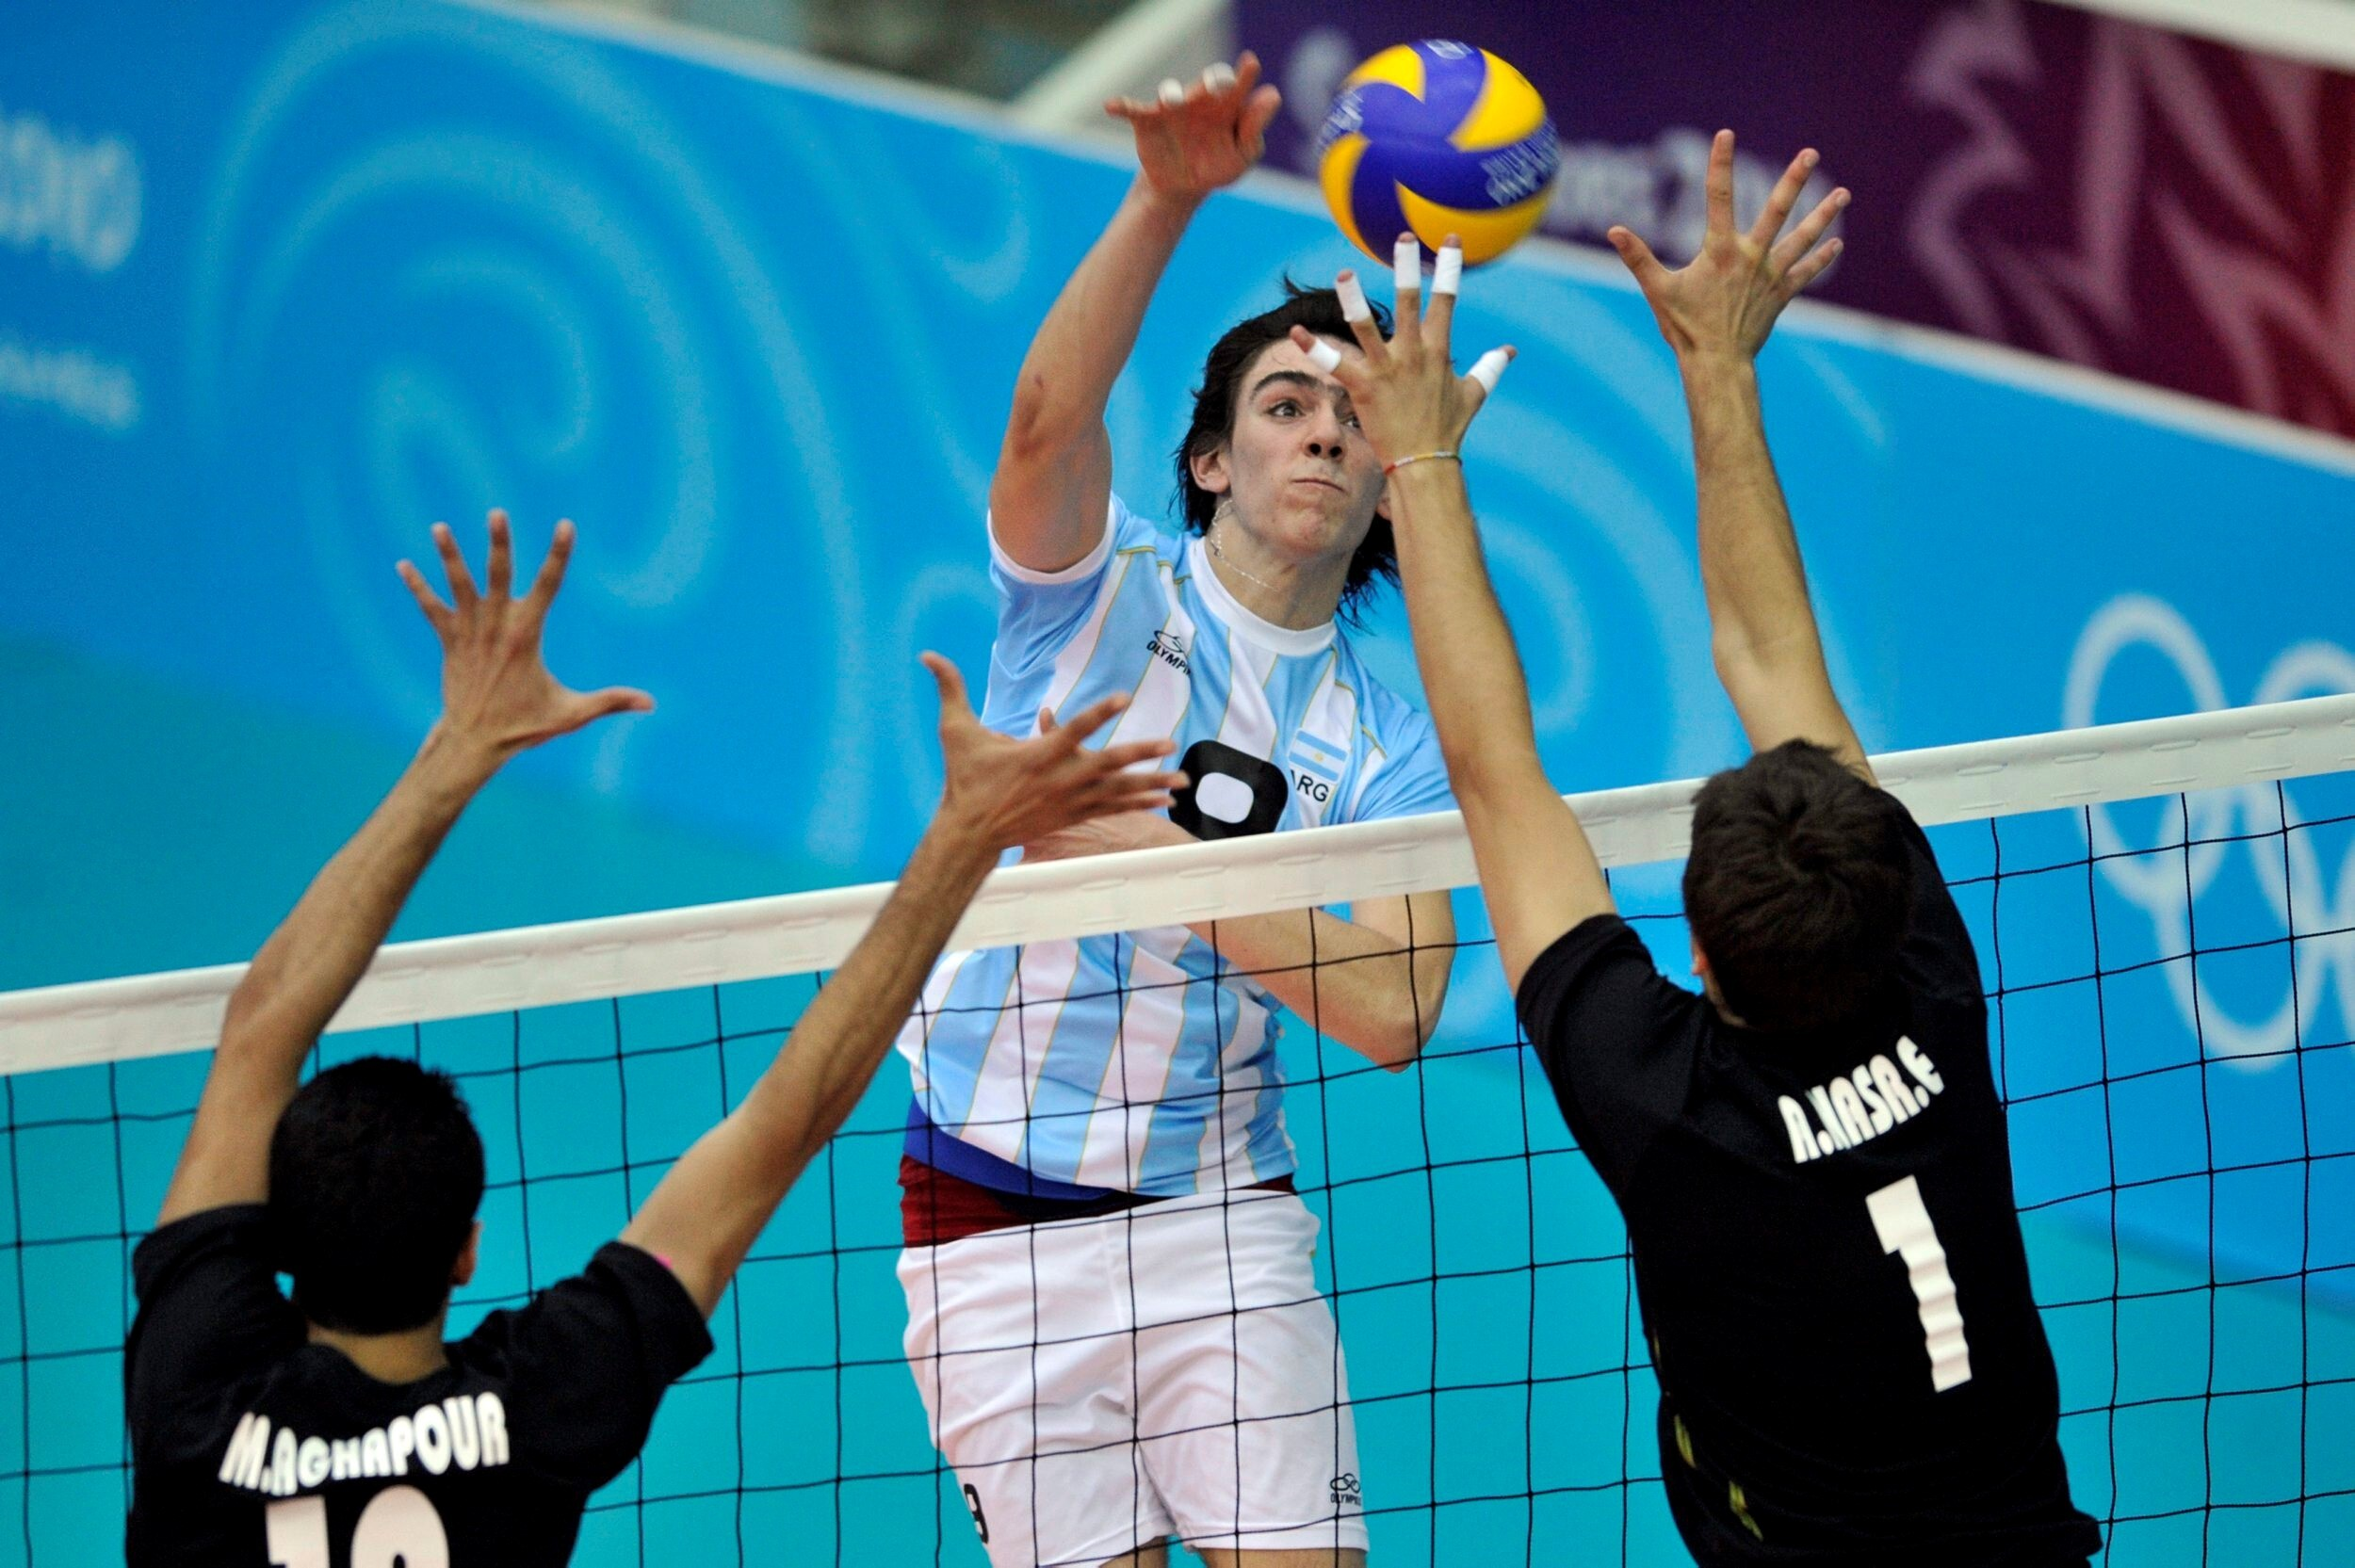 Man volleyball match in olympics wallpapers hd wallpapers voltagebd Images